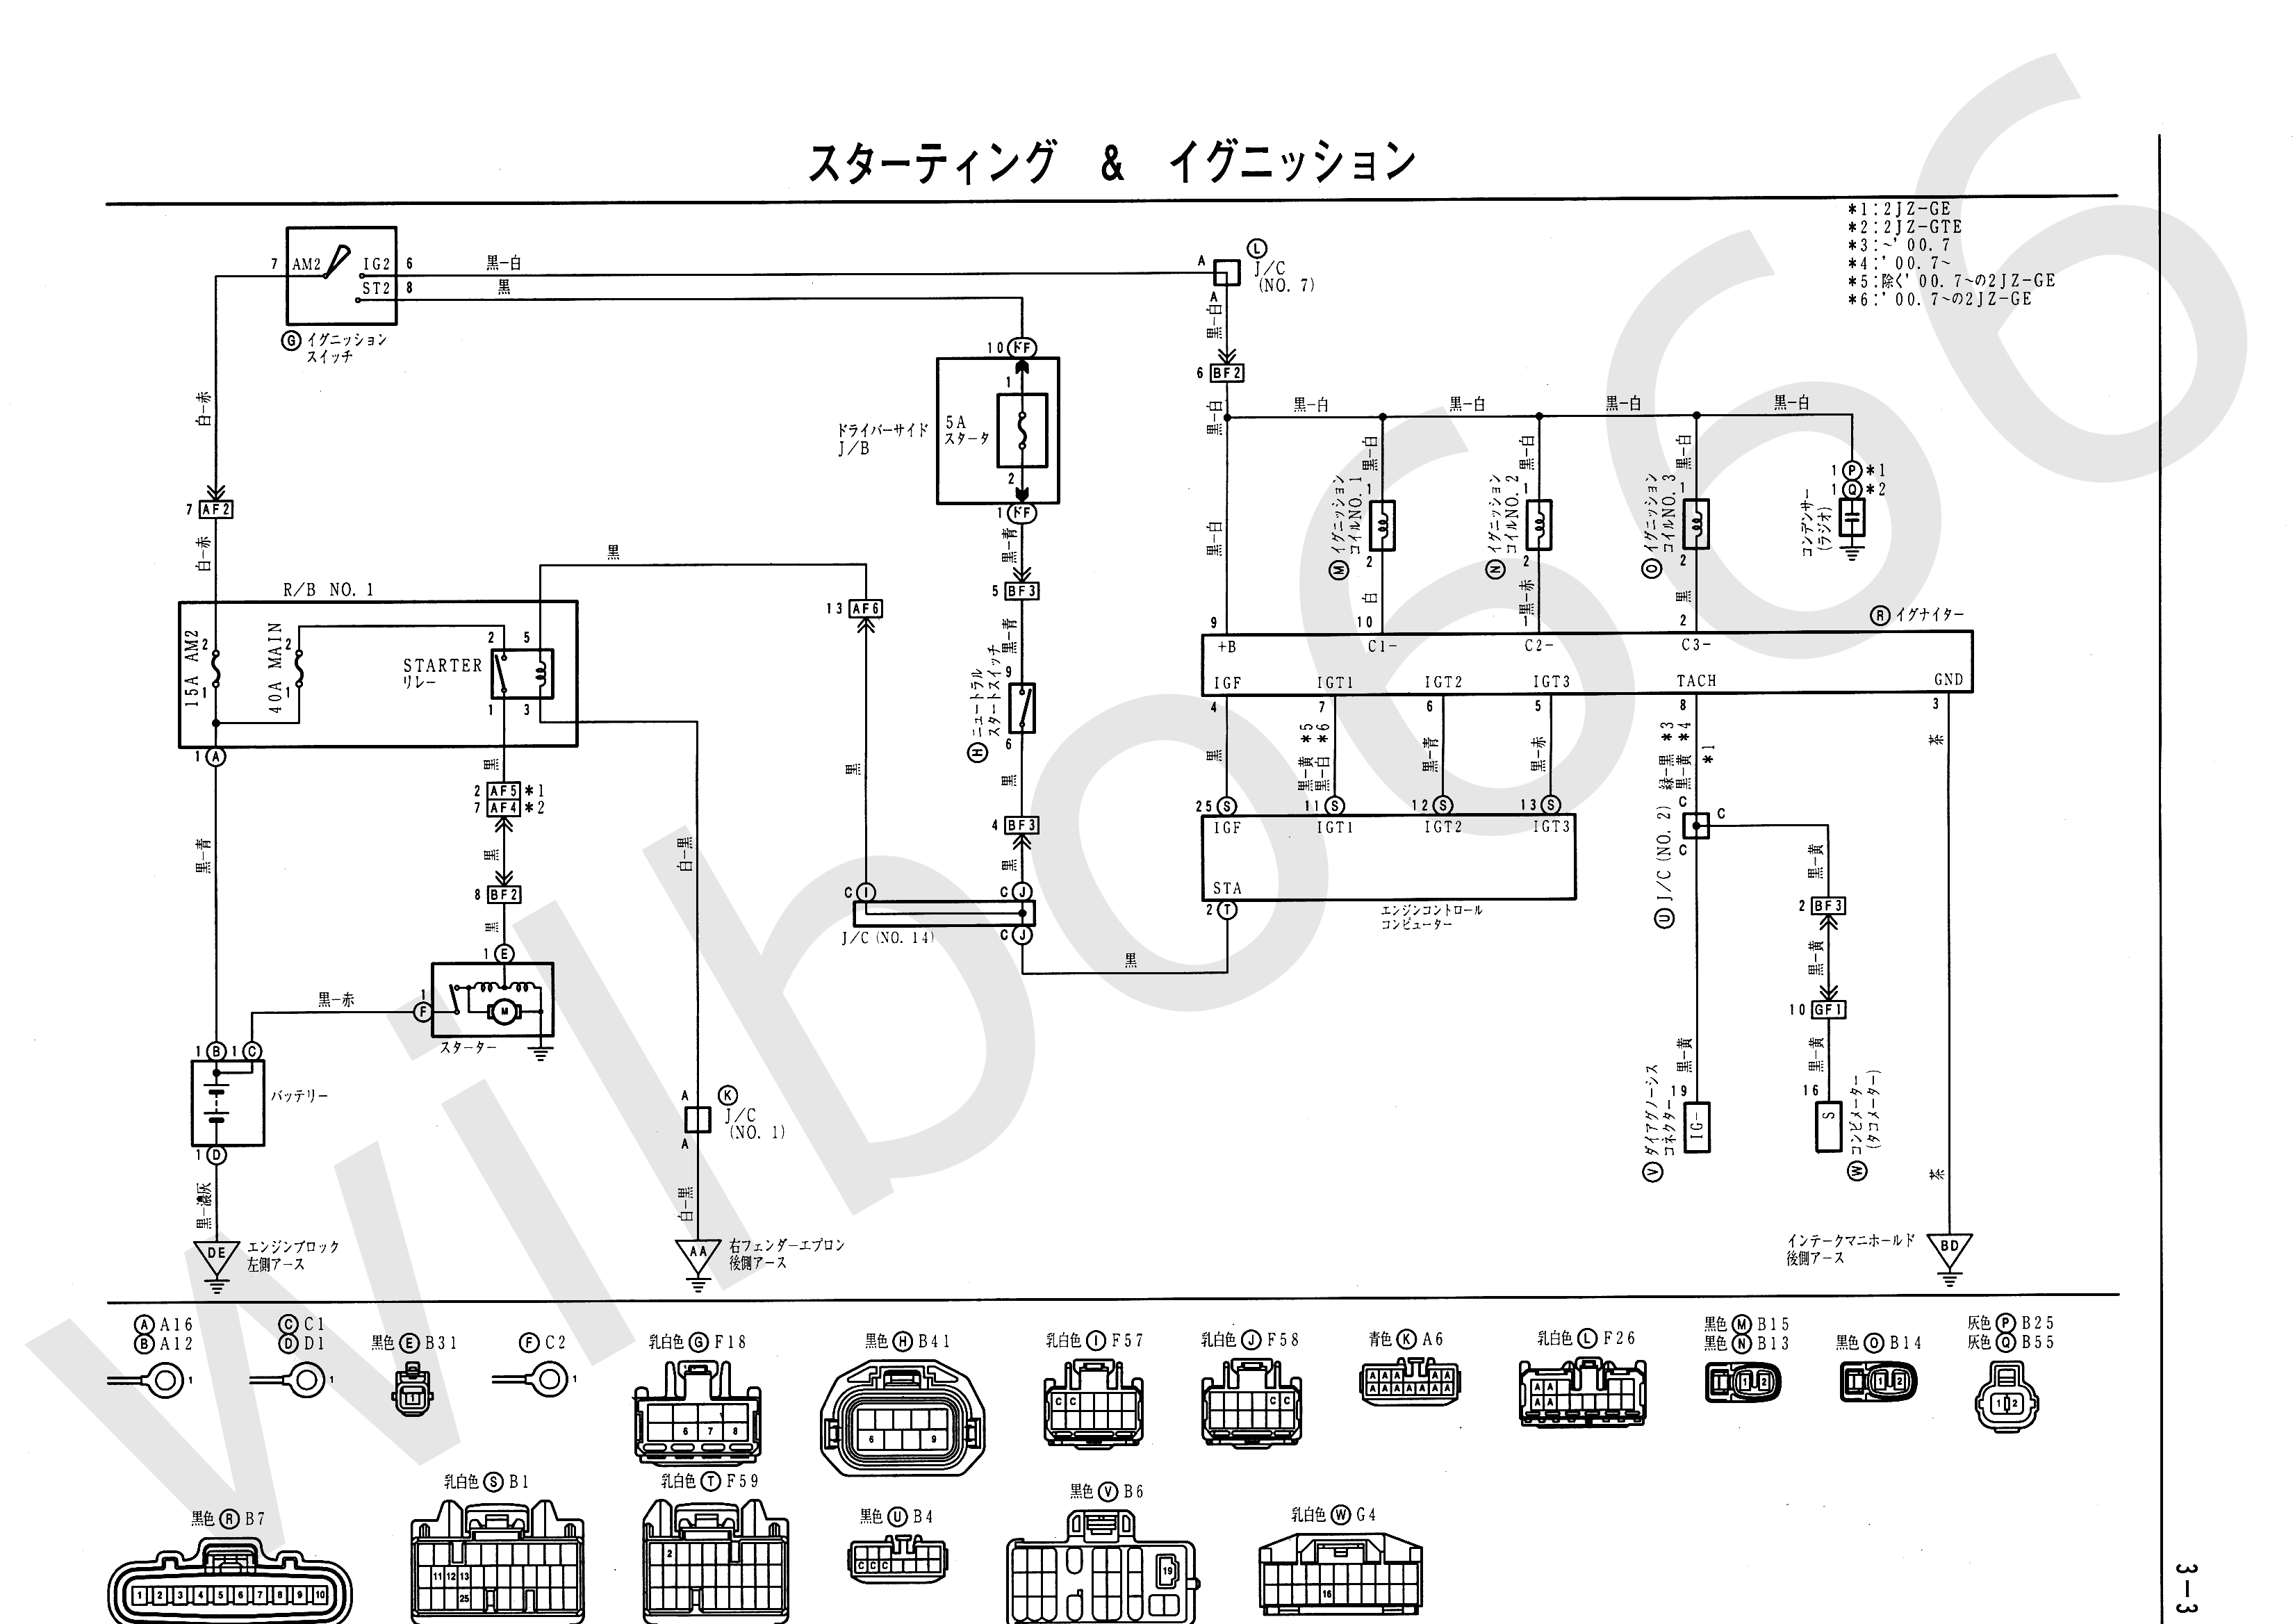 Toyota wiring diagrams system toyota free wiring diagrams toyota aristo engine diagram toyota free wiring diagrams wiring diagram swarovskicordoba Image collections